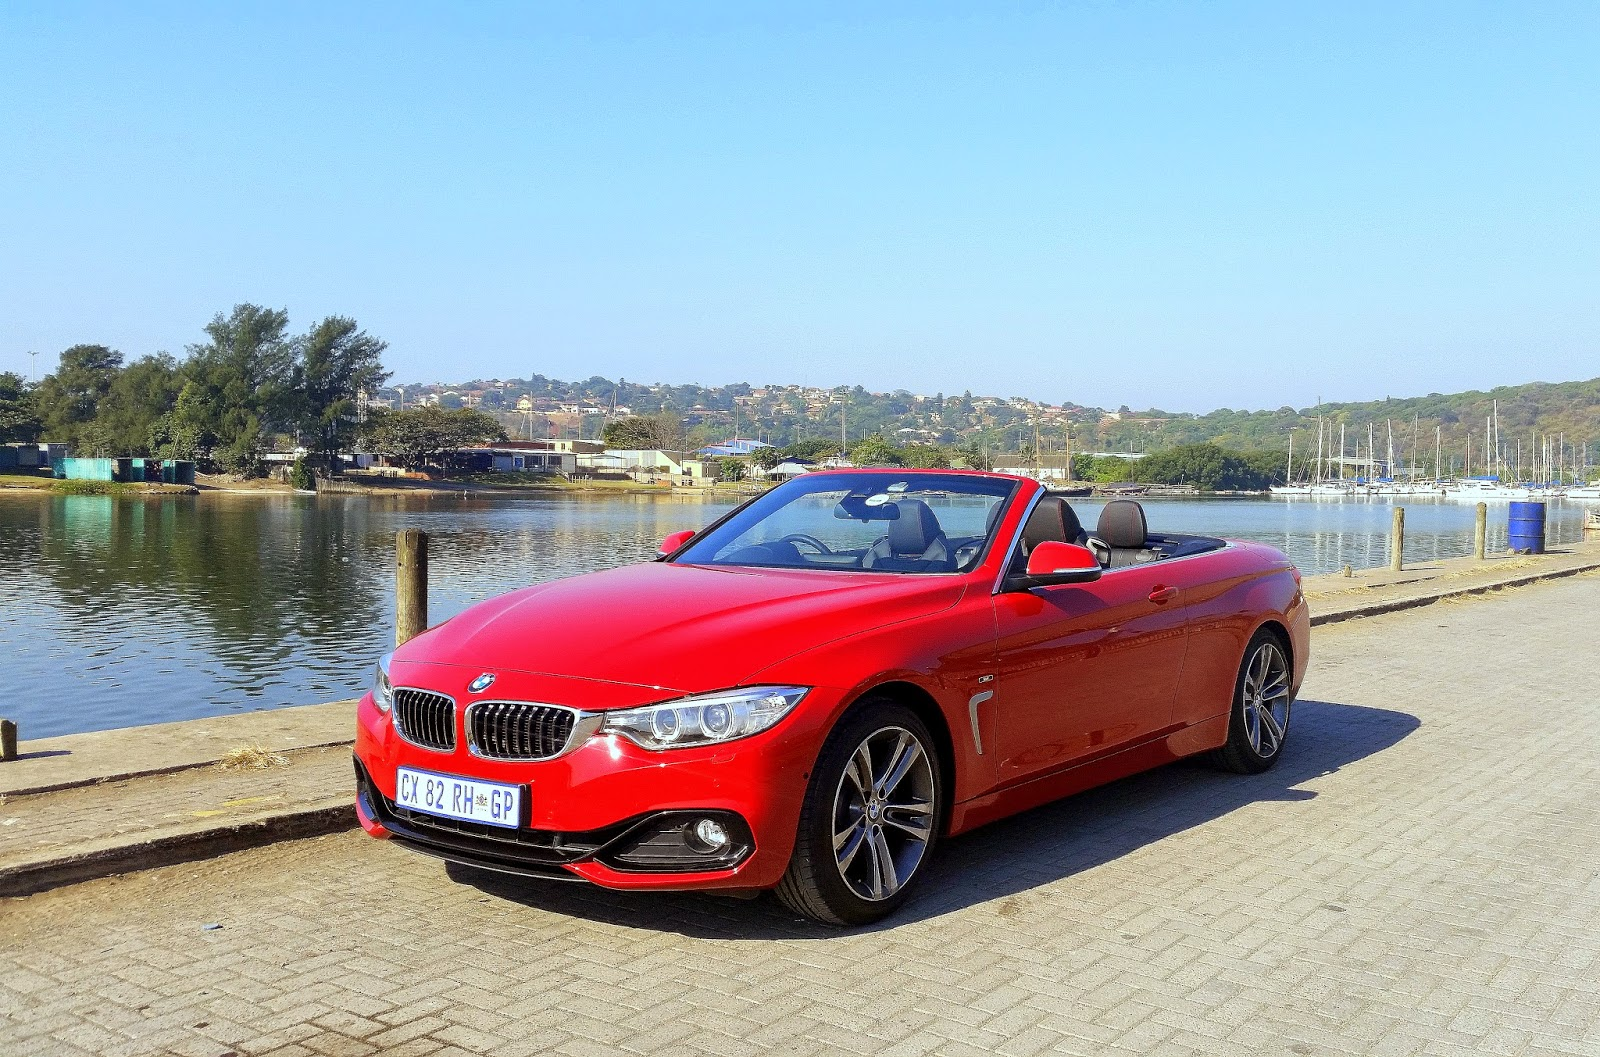 BMW 428 i Convertible